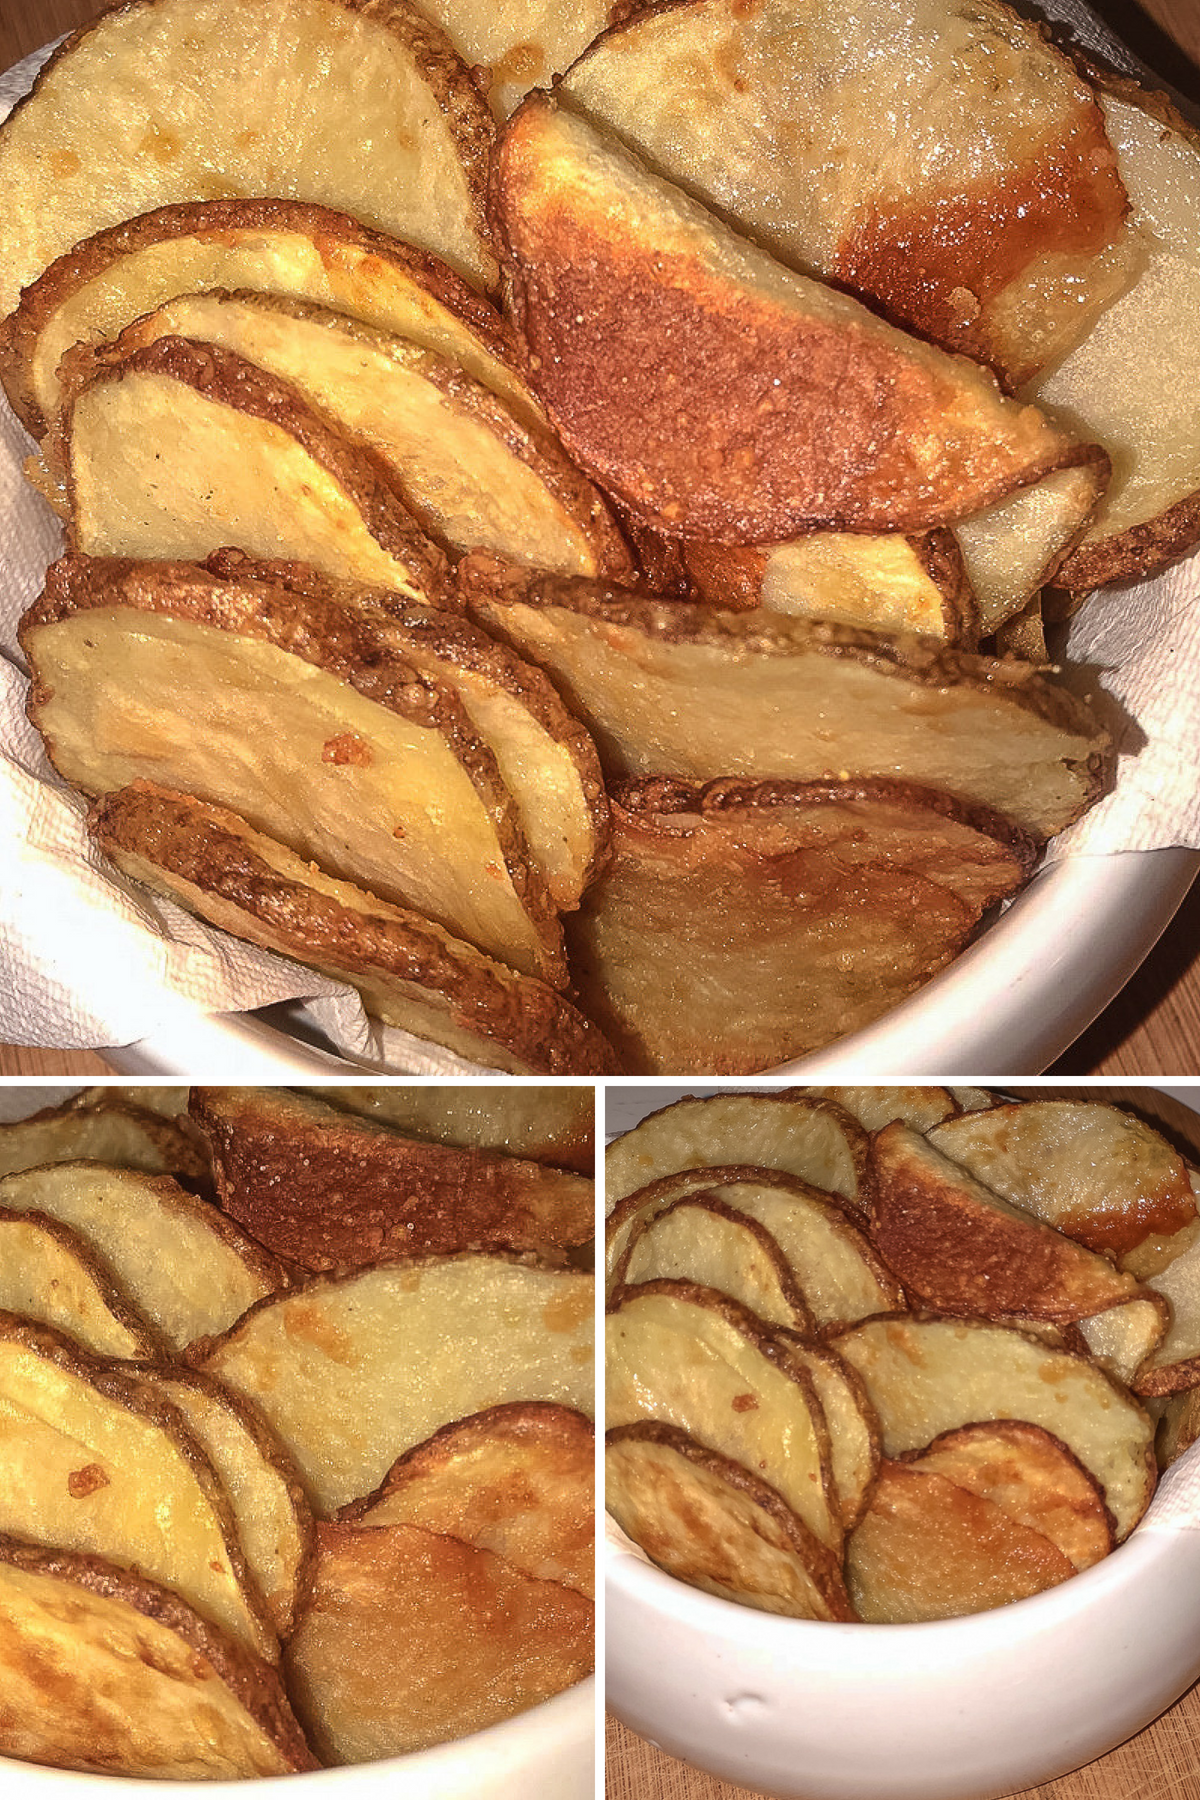 Homemade Air Fryer cottage fries are what I dream about on a regular basis. They are a lot different from your basic steak fry or waffle fry. They are circular cuts of potato that get baked or fried and offer that perfect tender and crunchy aspect a fry should have. #airfryer #potatoes #cottagefries #homemade